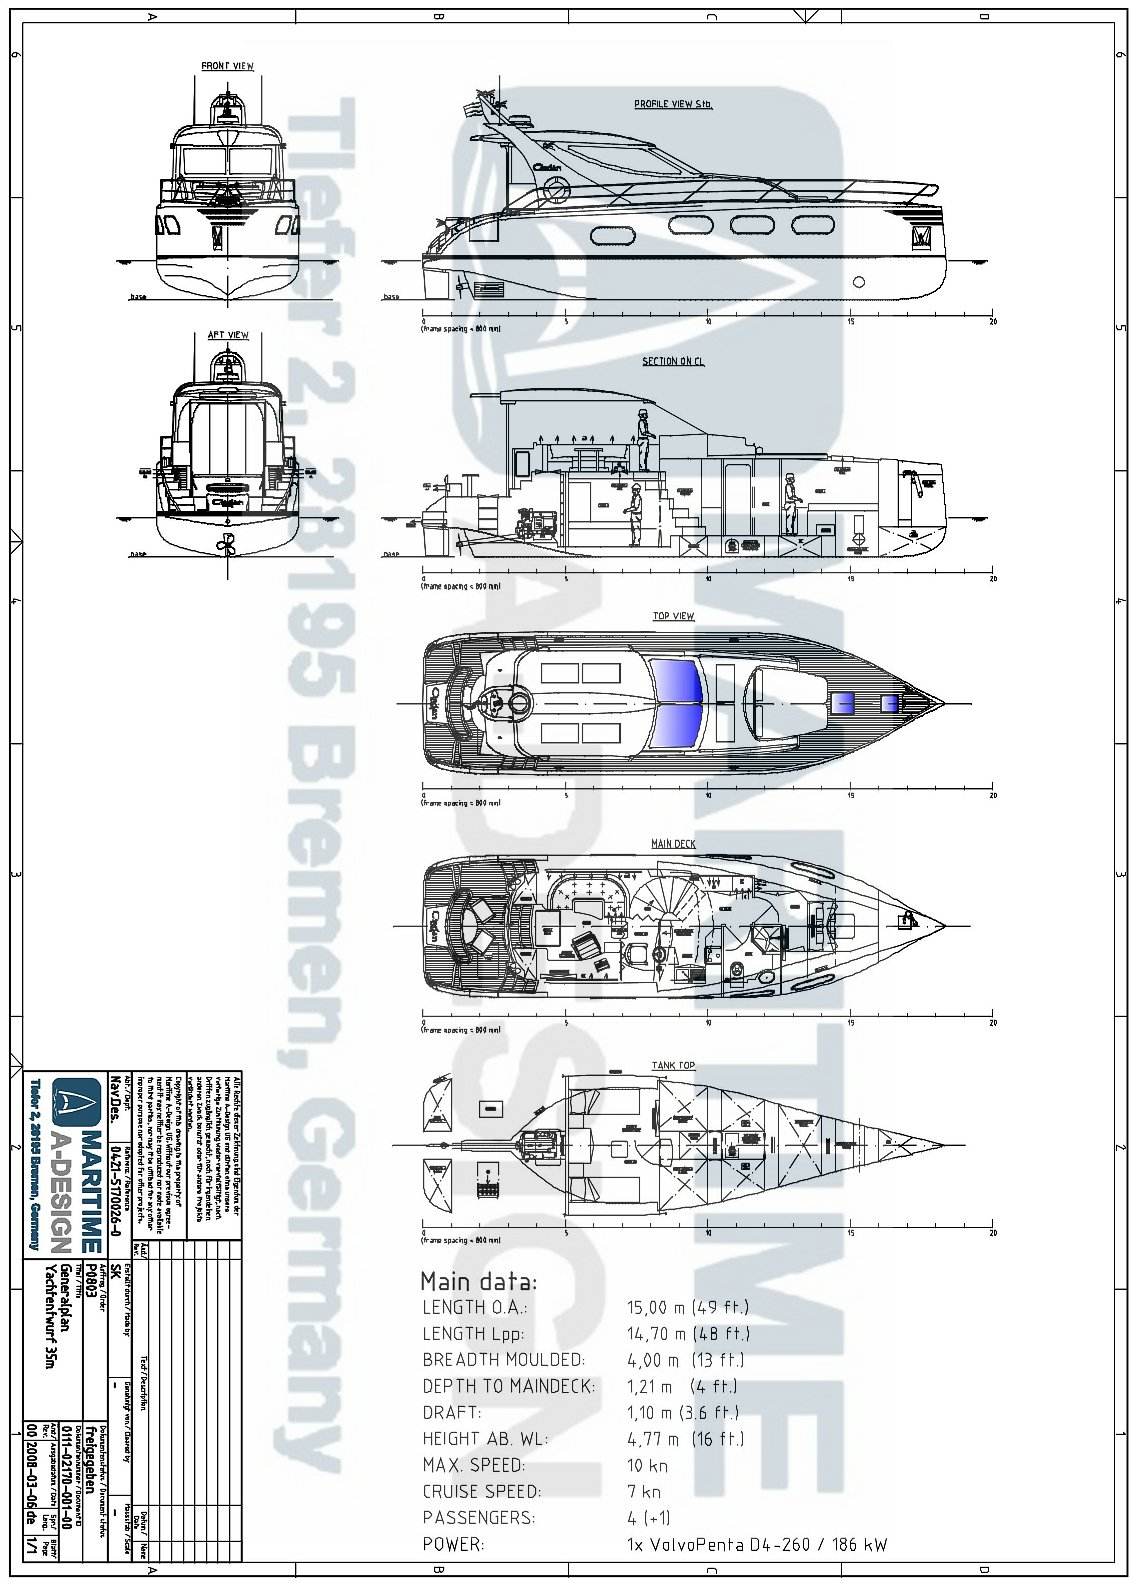 Maritime A Design Products Yacht Motor Yachts 260a Volvo Penta Engine Diagram Coming Soon